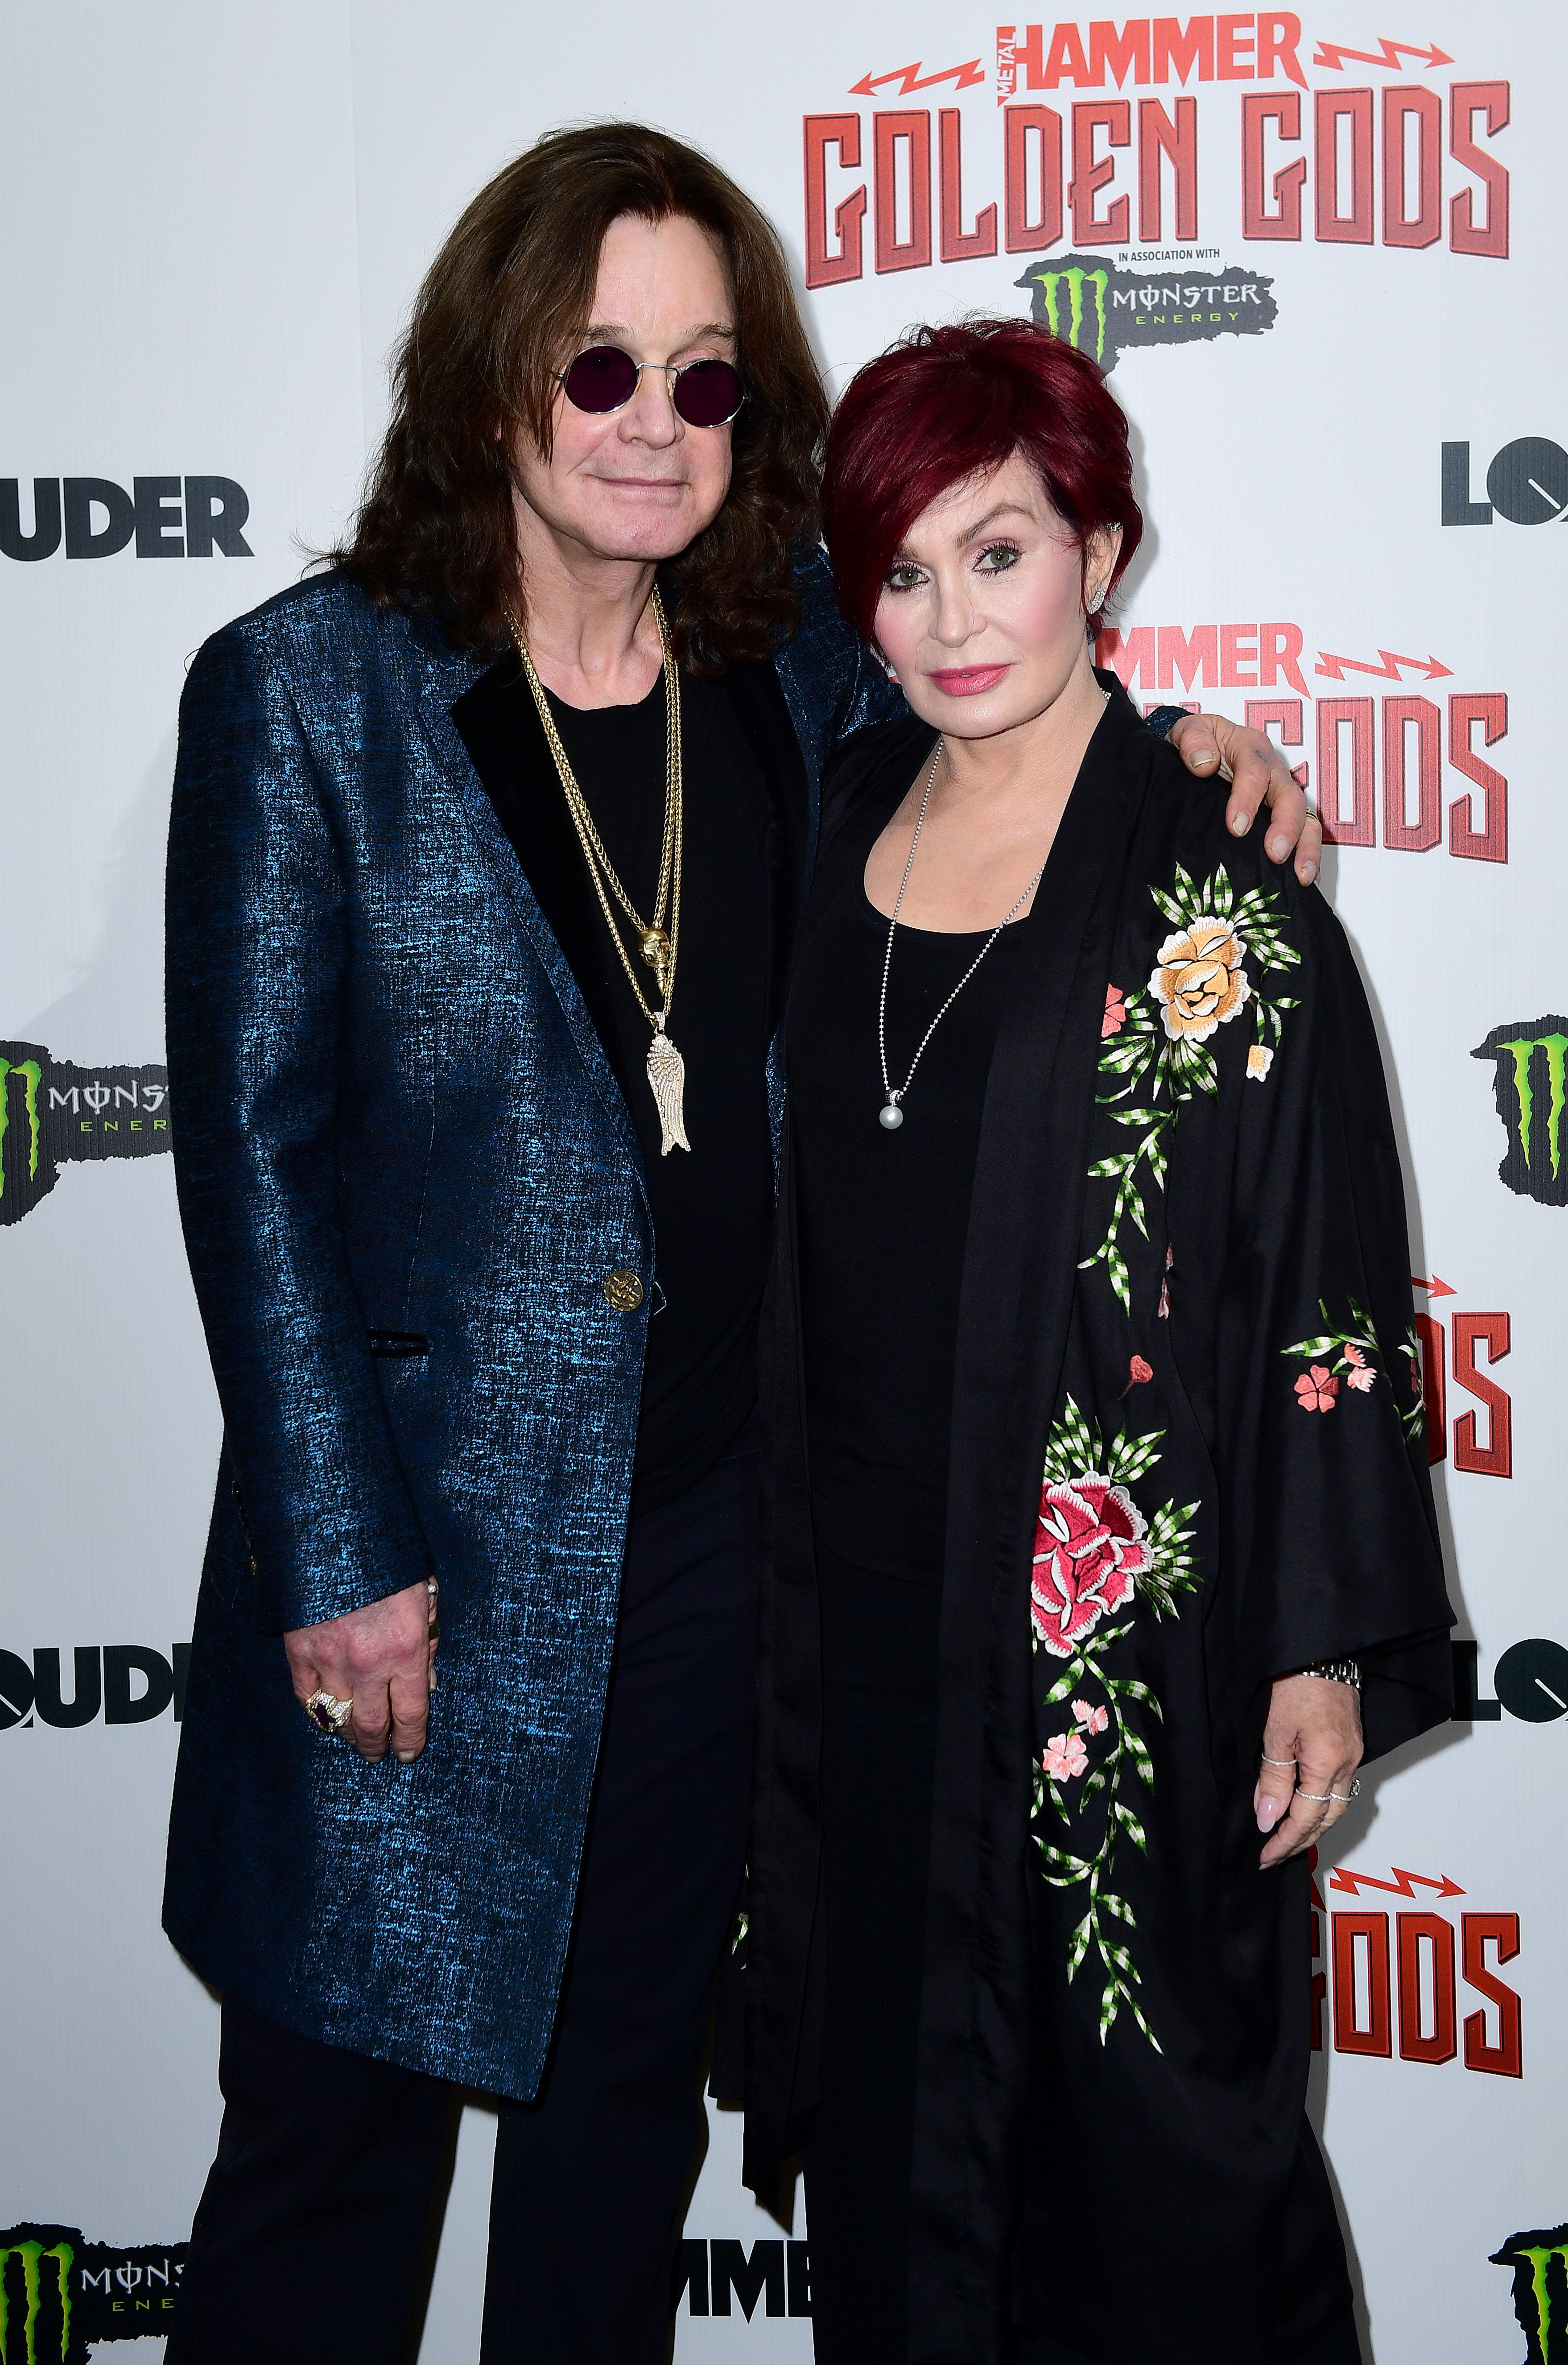 Ozzy Osbourne Taken To Hospital Suffering With 'Complications' From